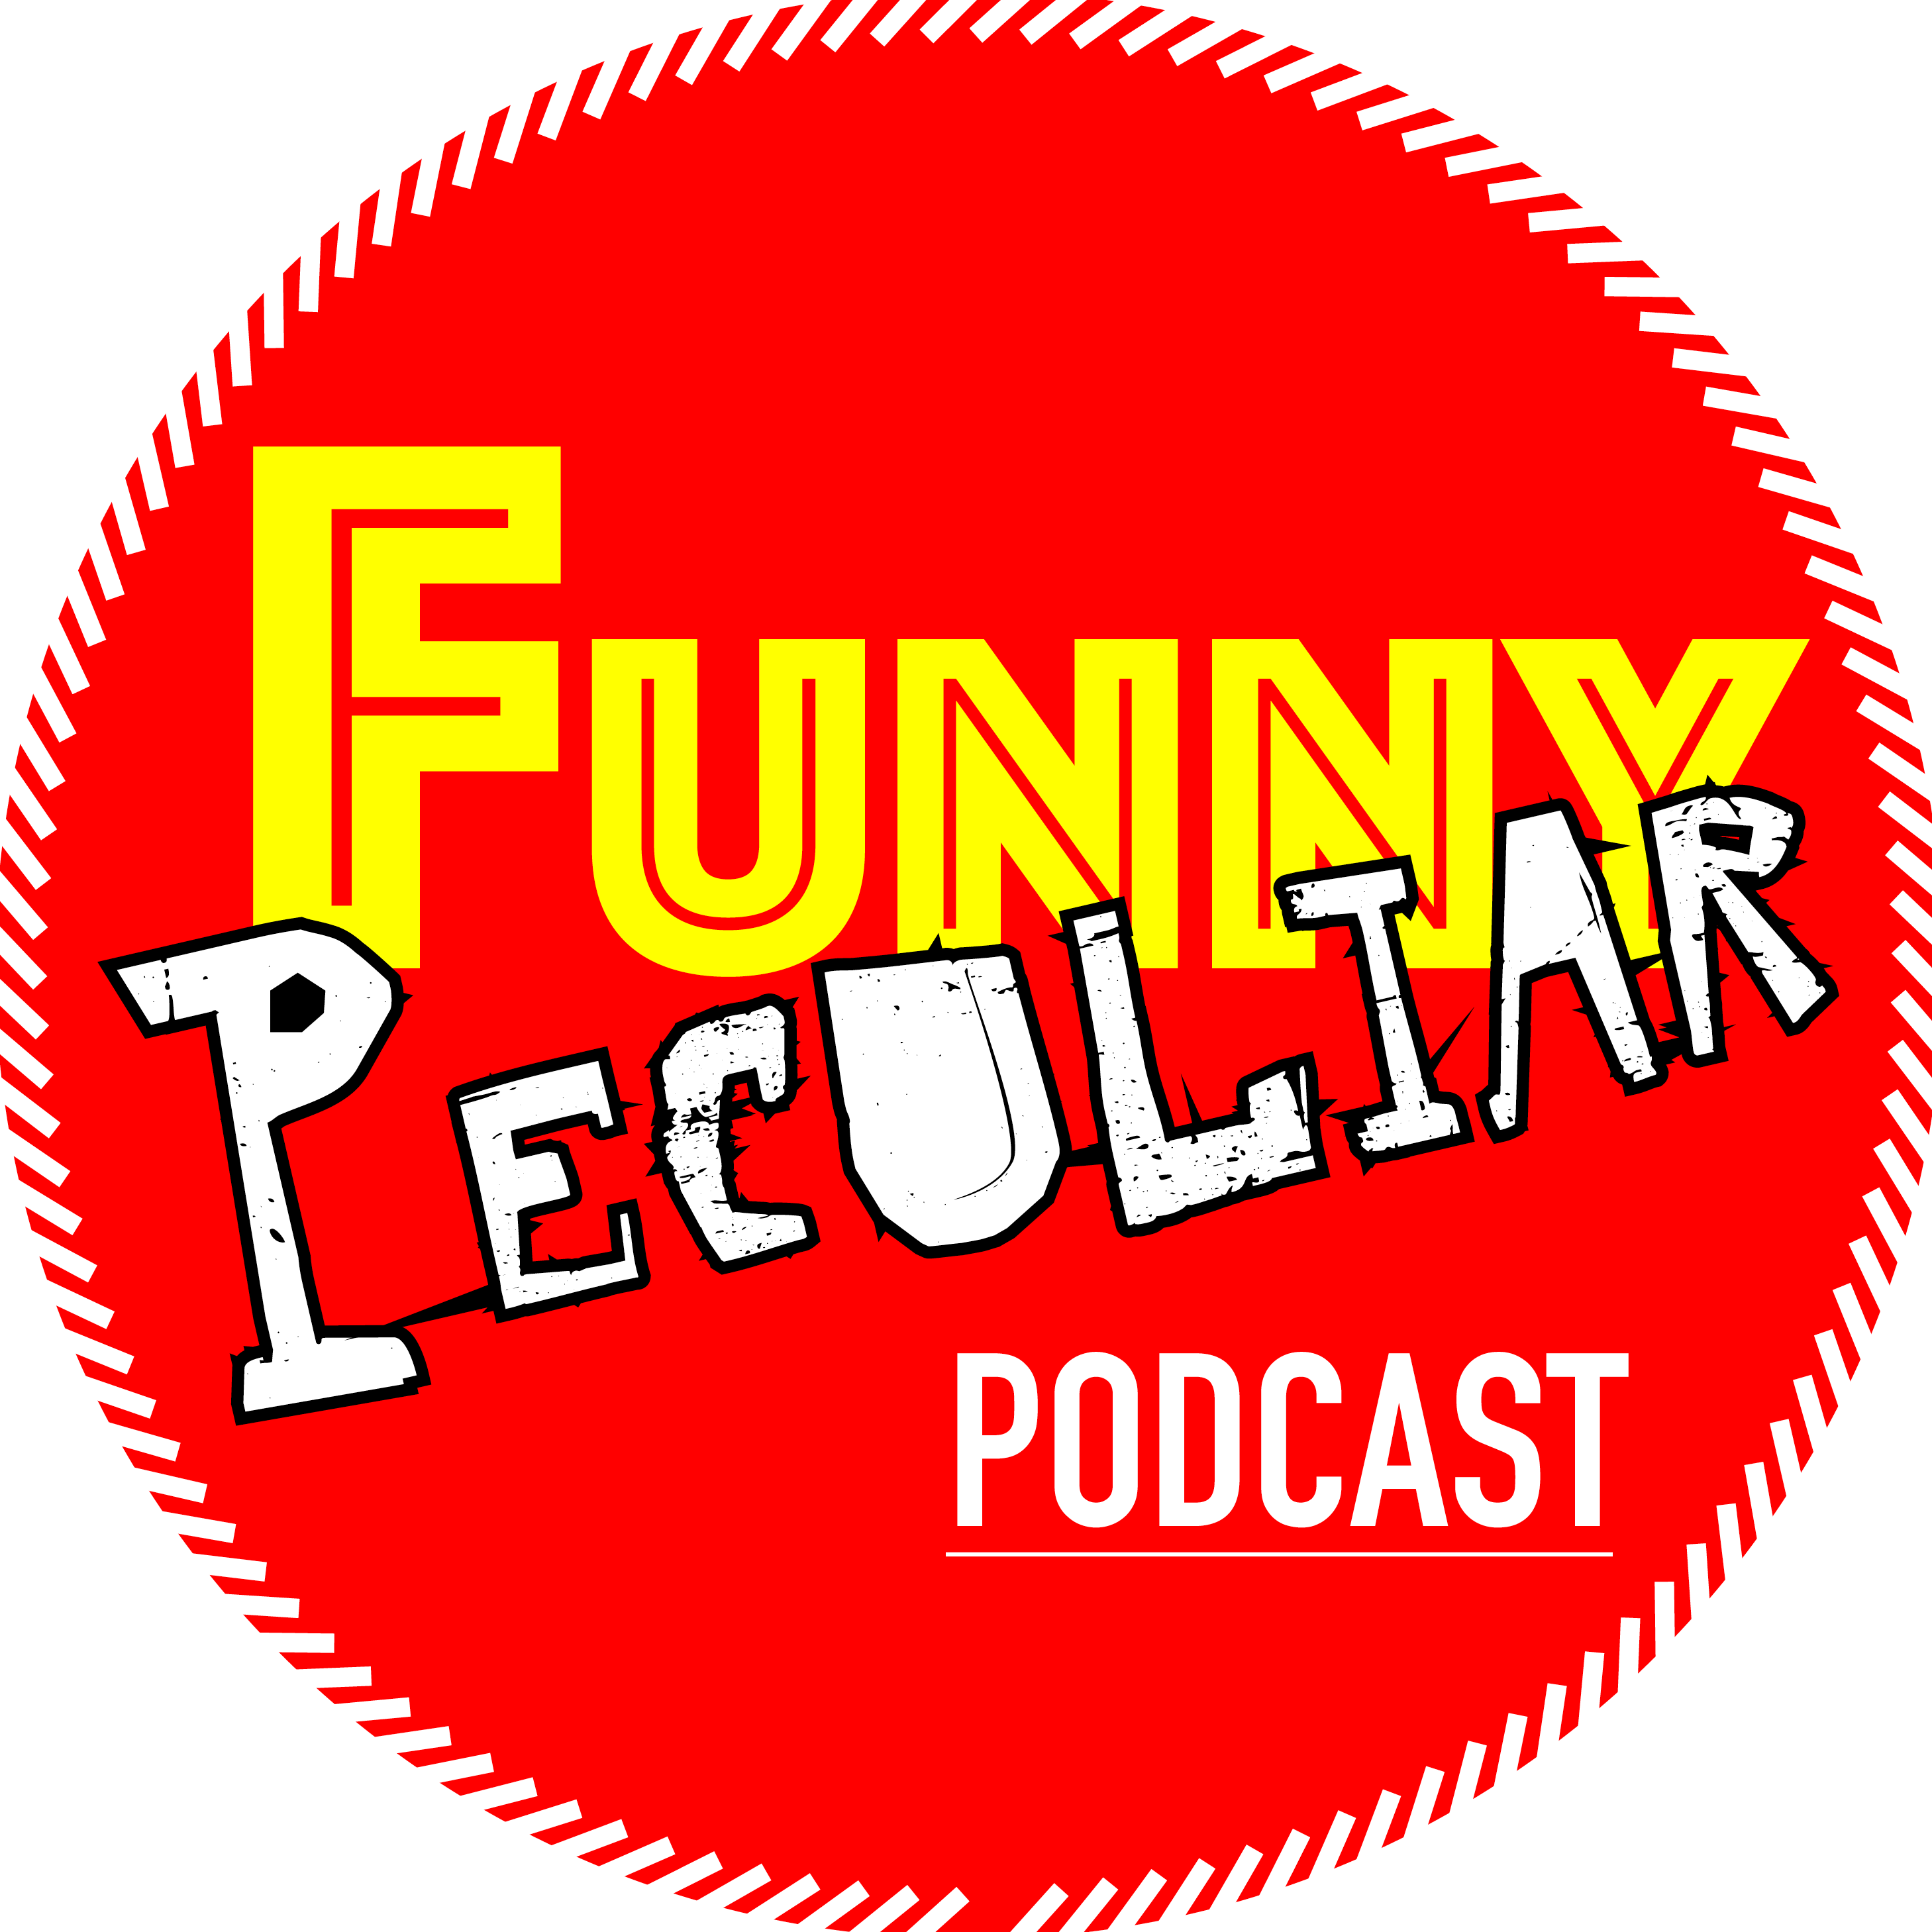 Funny Peculiar Podcast show art